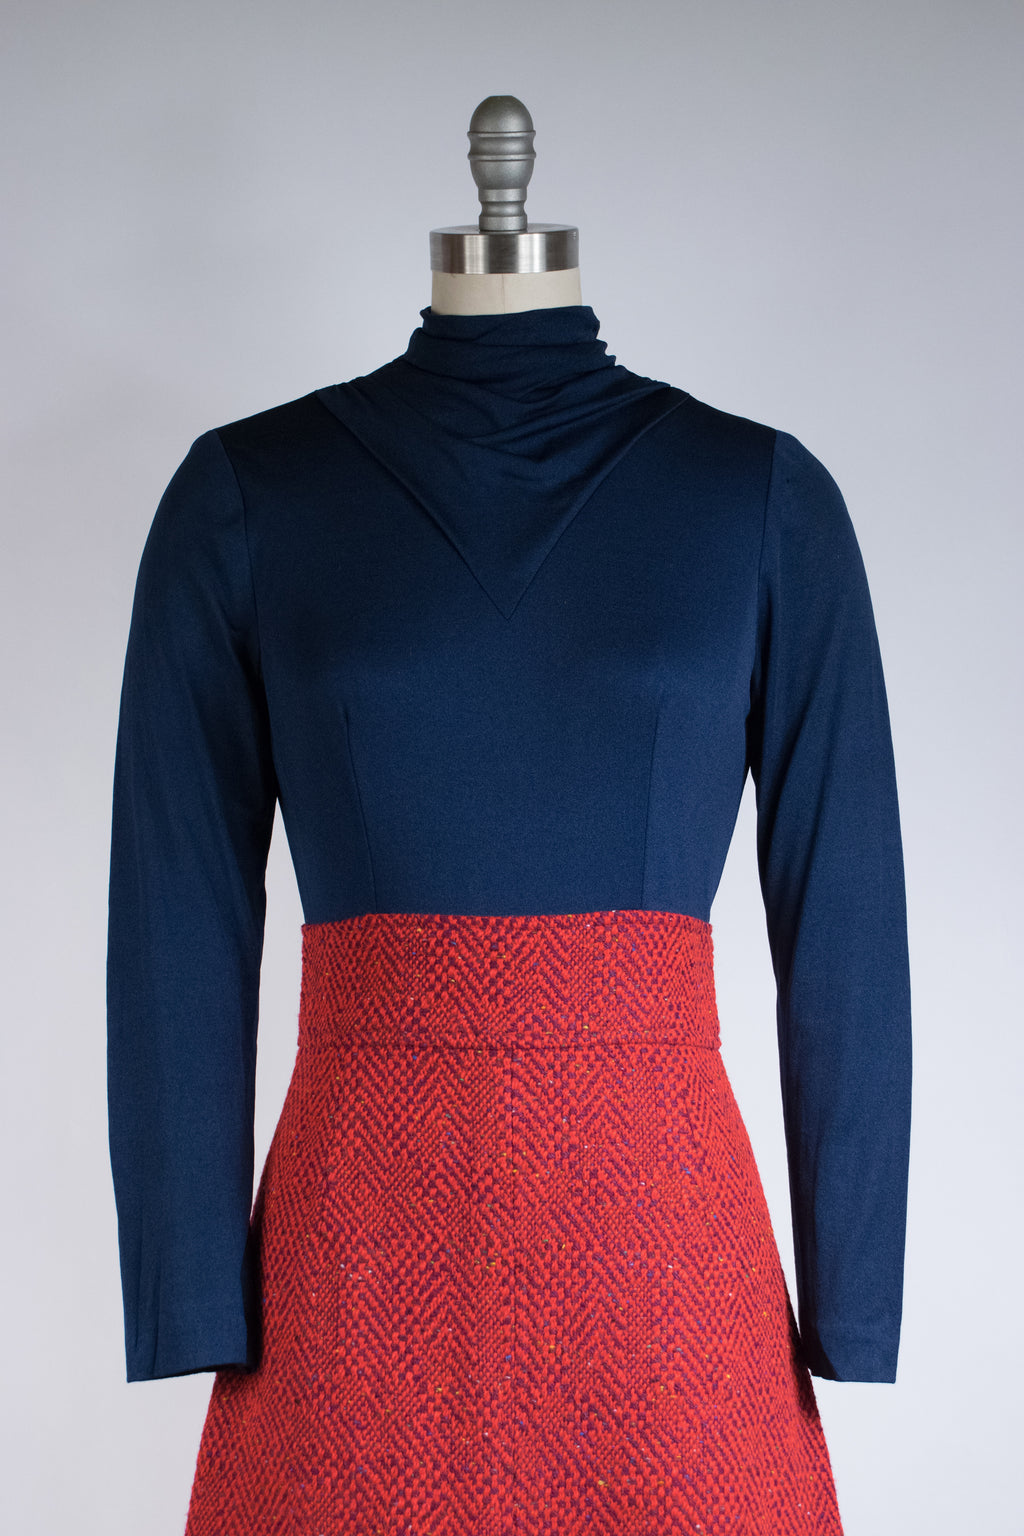 Smart 1960s Two Piece Dress Set in Vegan Tweed and Navy Jersey